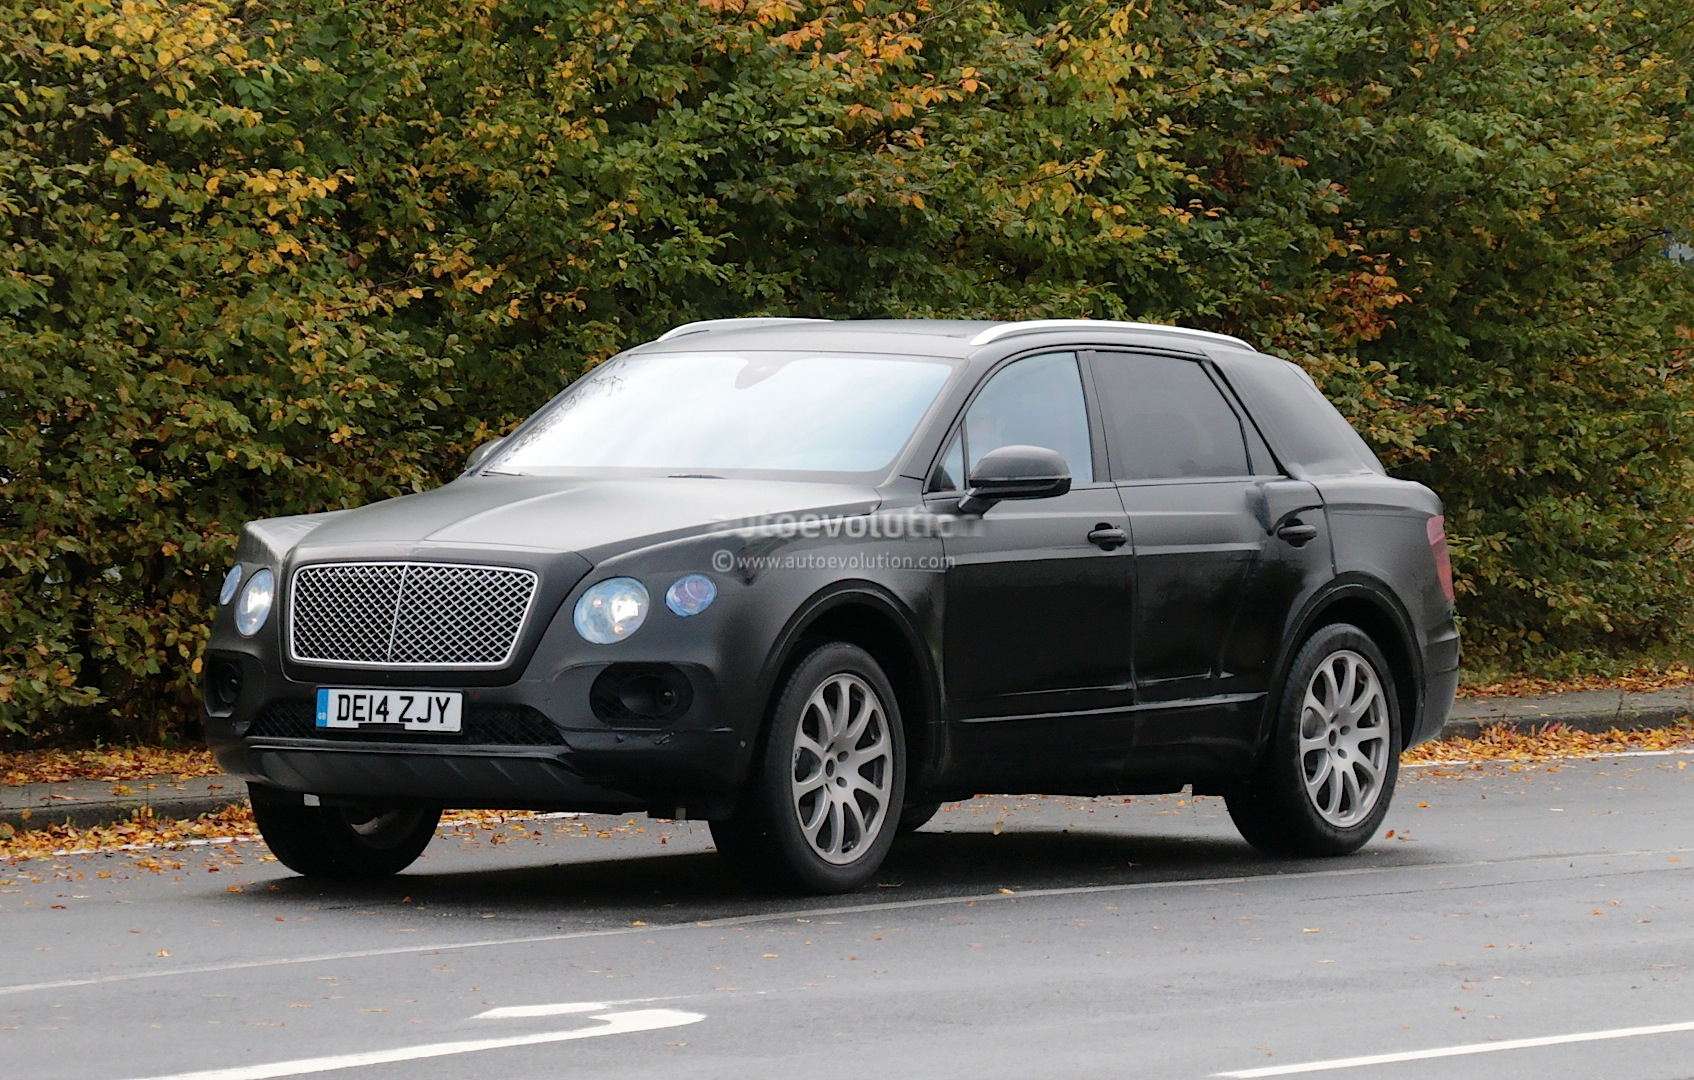 Bentley Suv Spied Near The Nurburgring